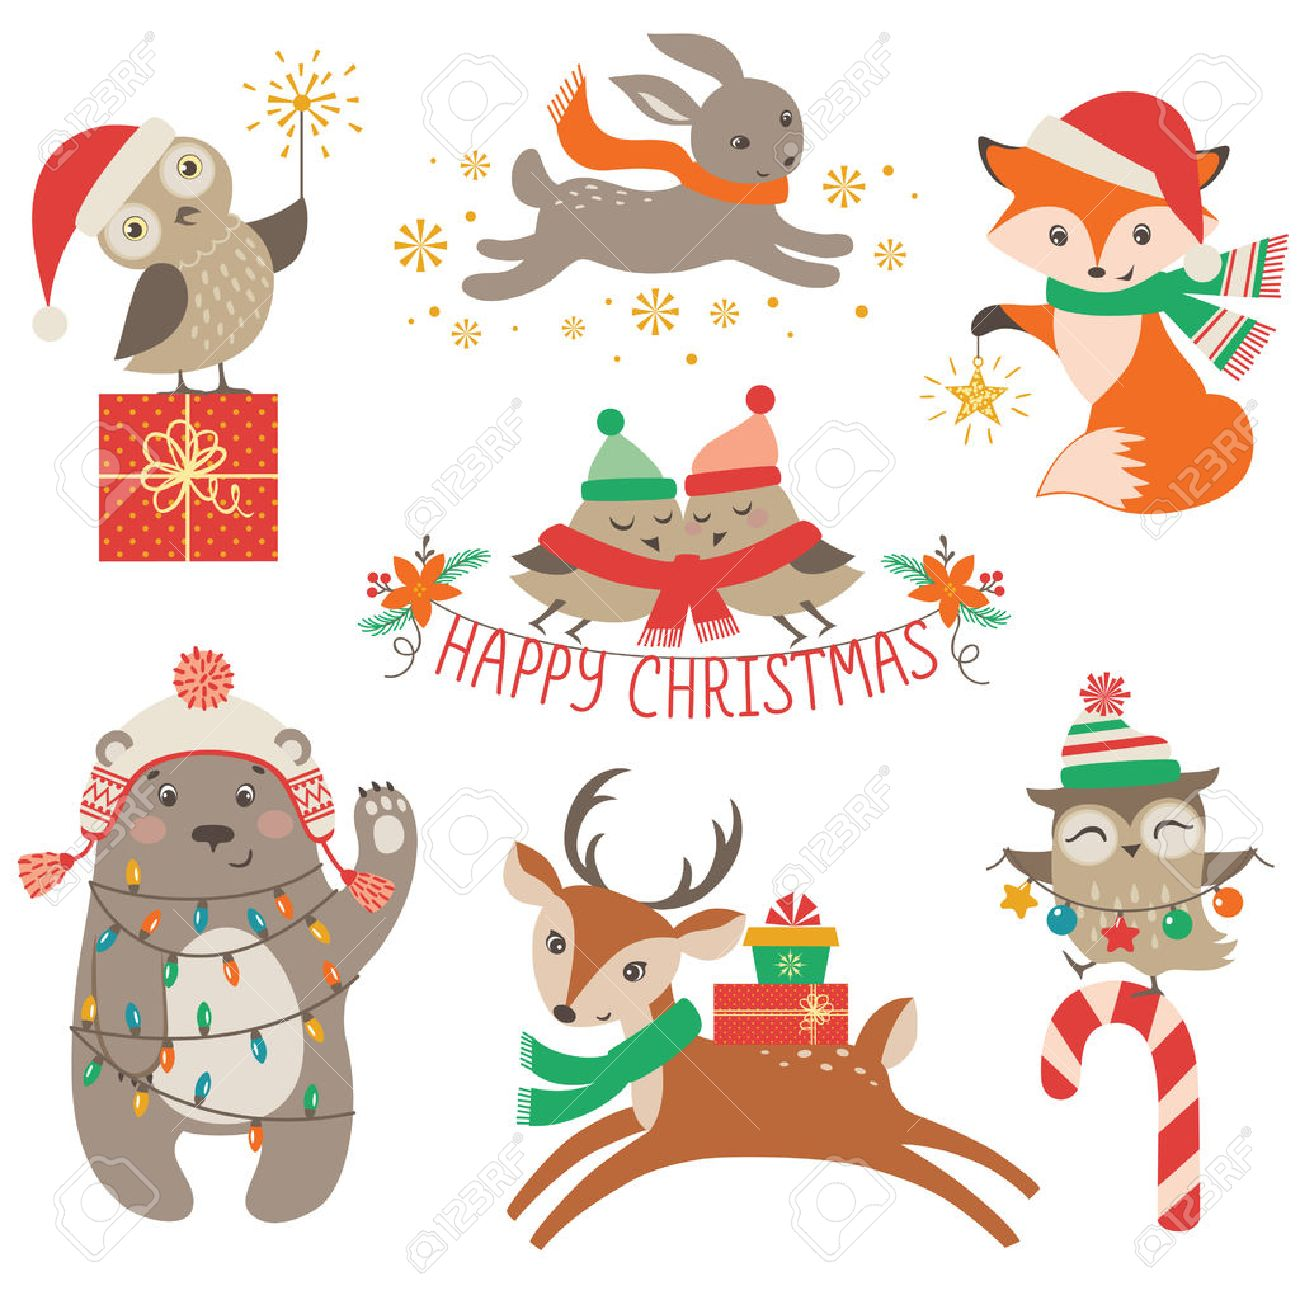 Set of cute Christmas design elements with woodland animals - 47012641